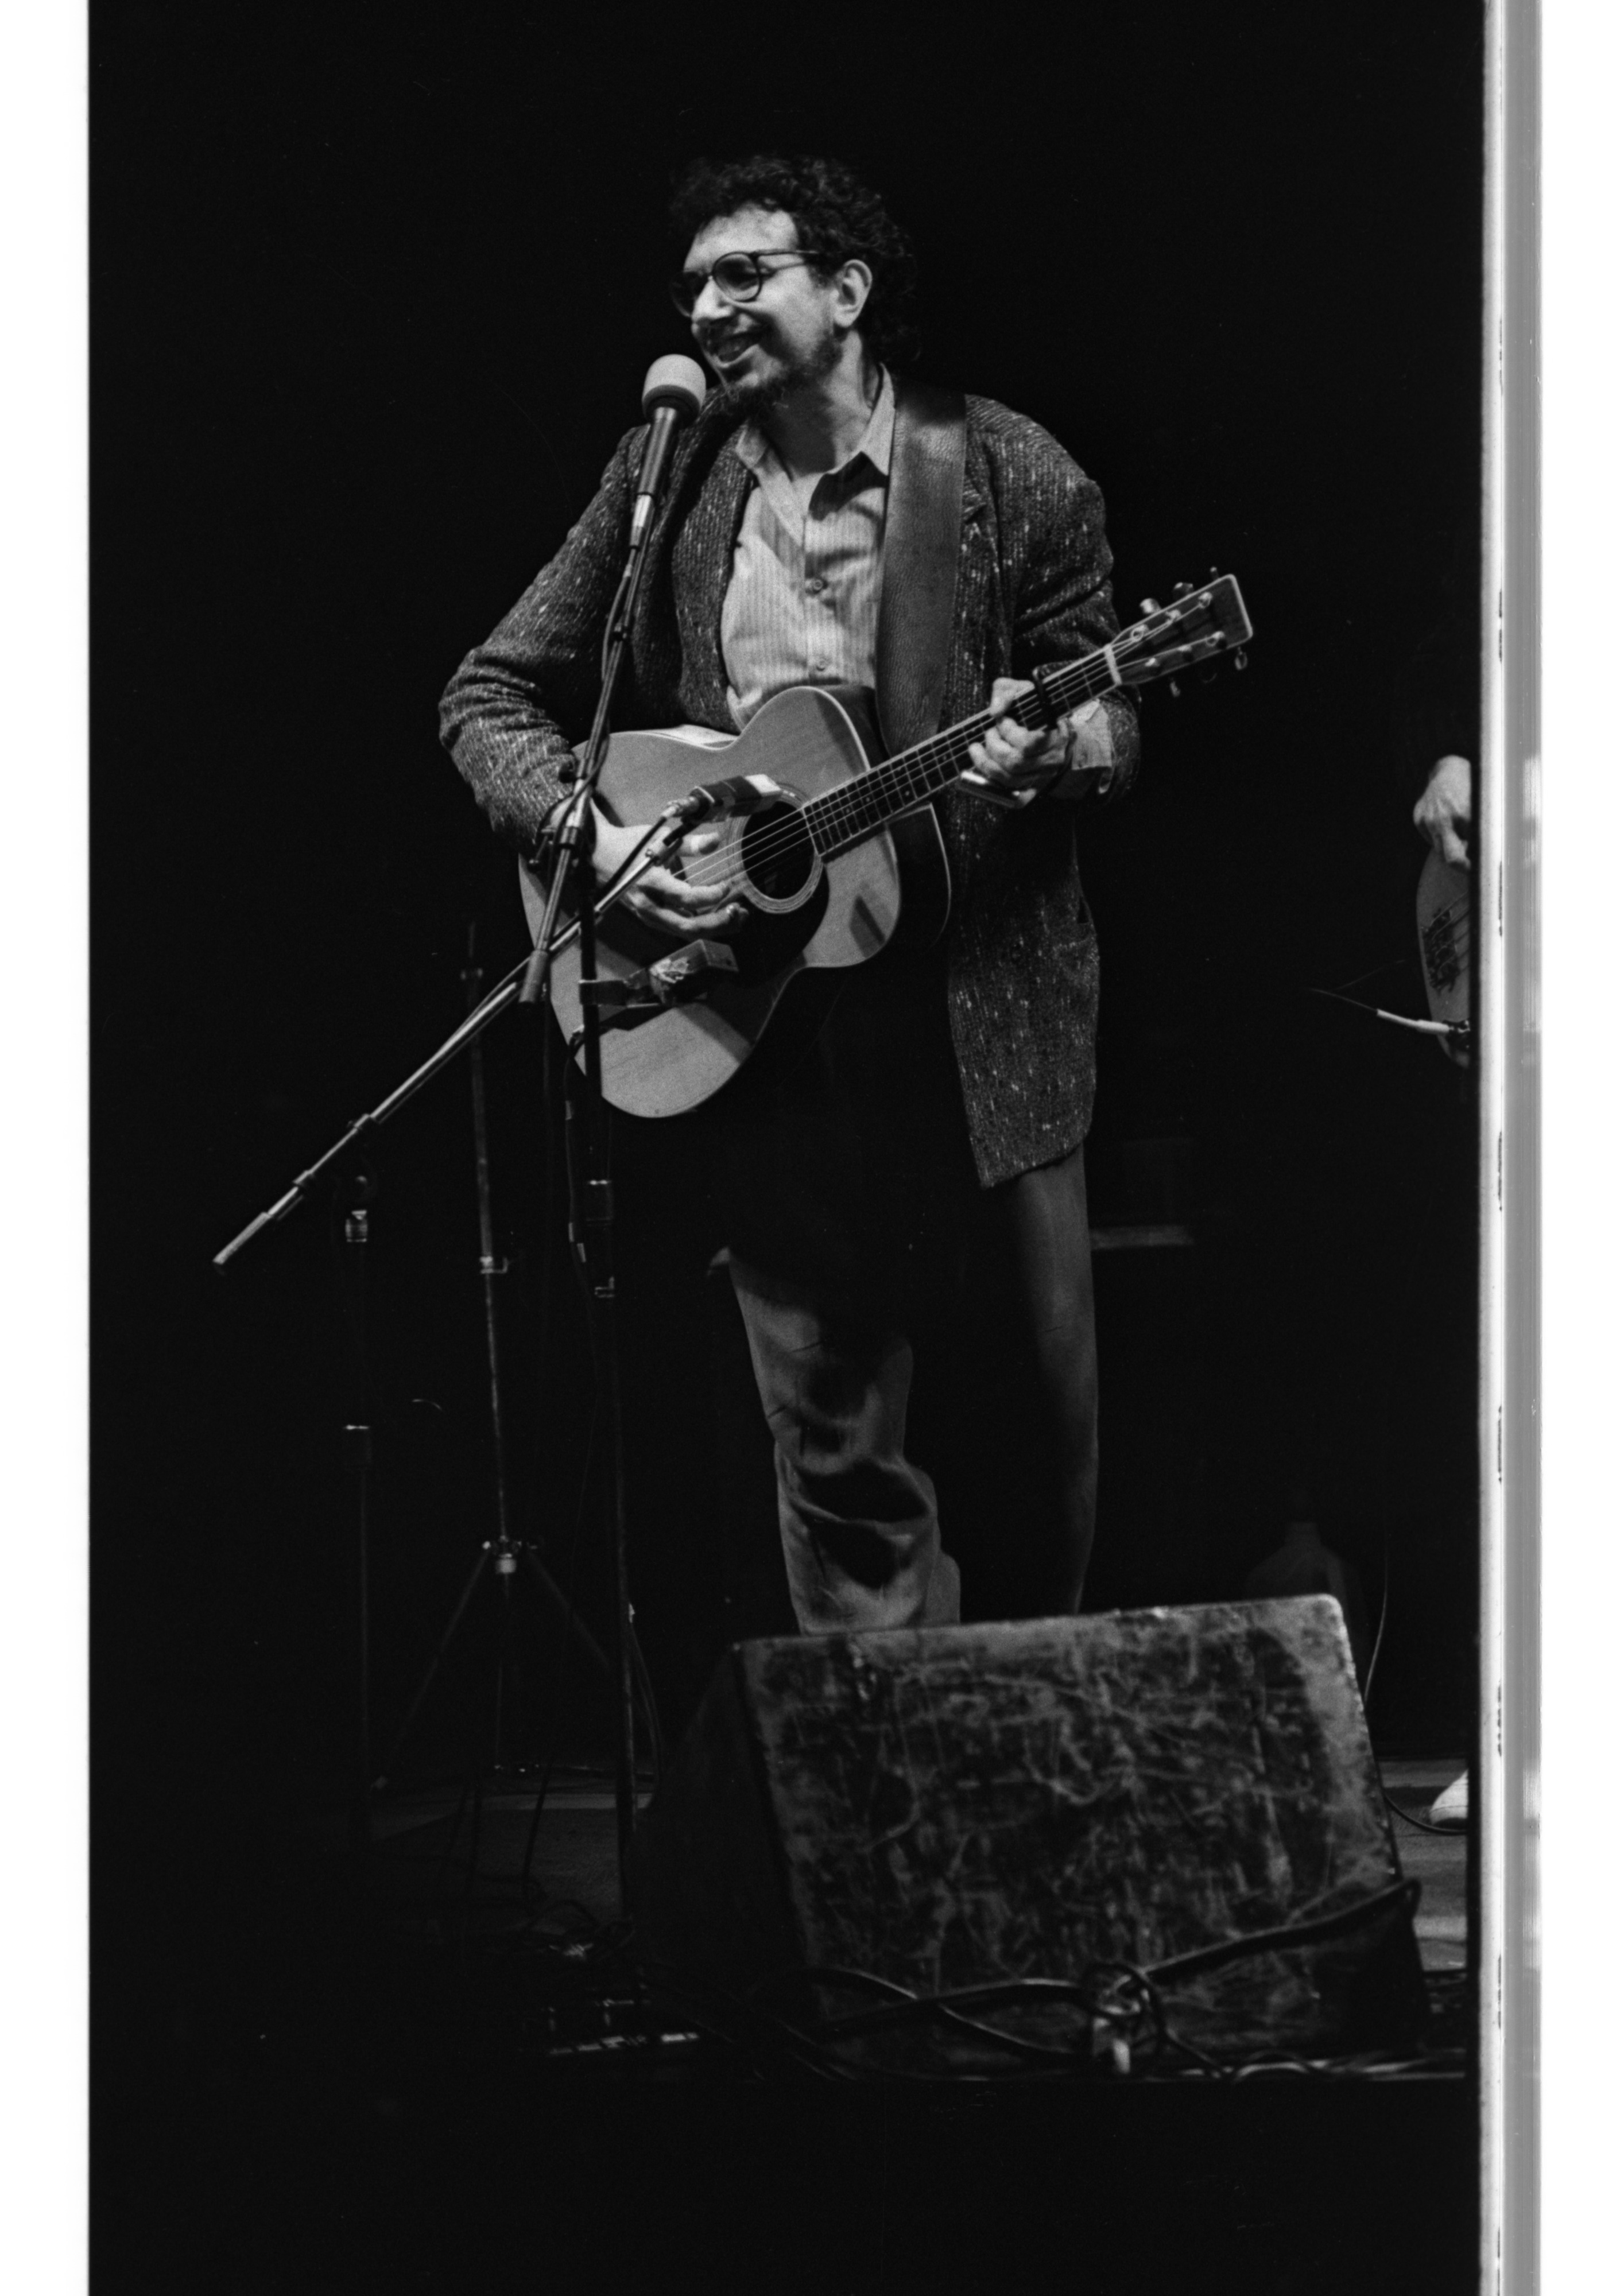 David Bromberg at the Ann Arbor Folk Festival, January 1989 image